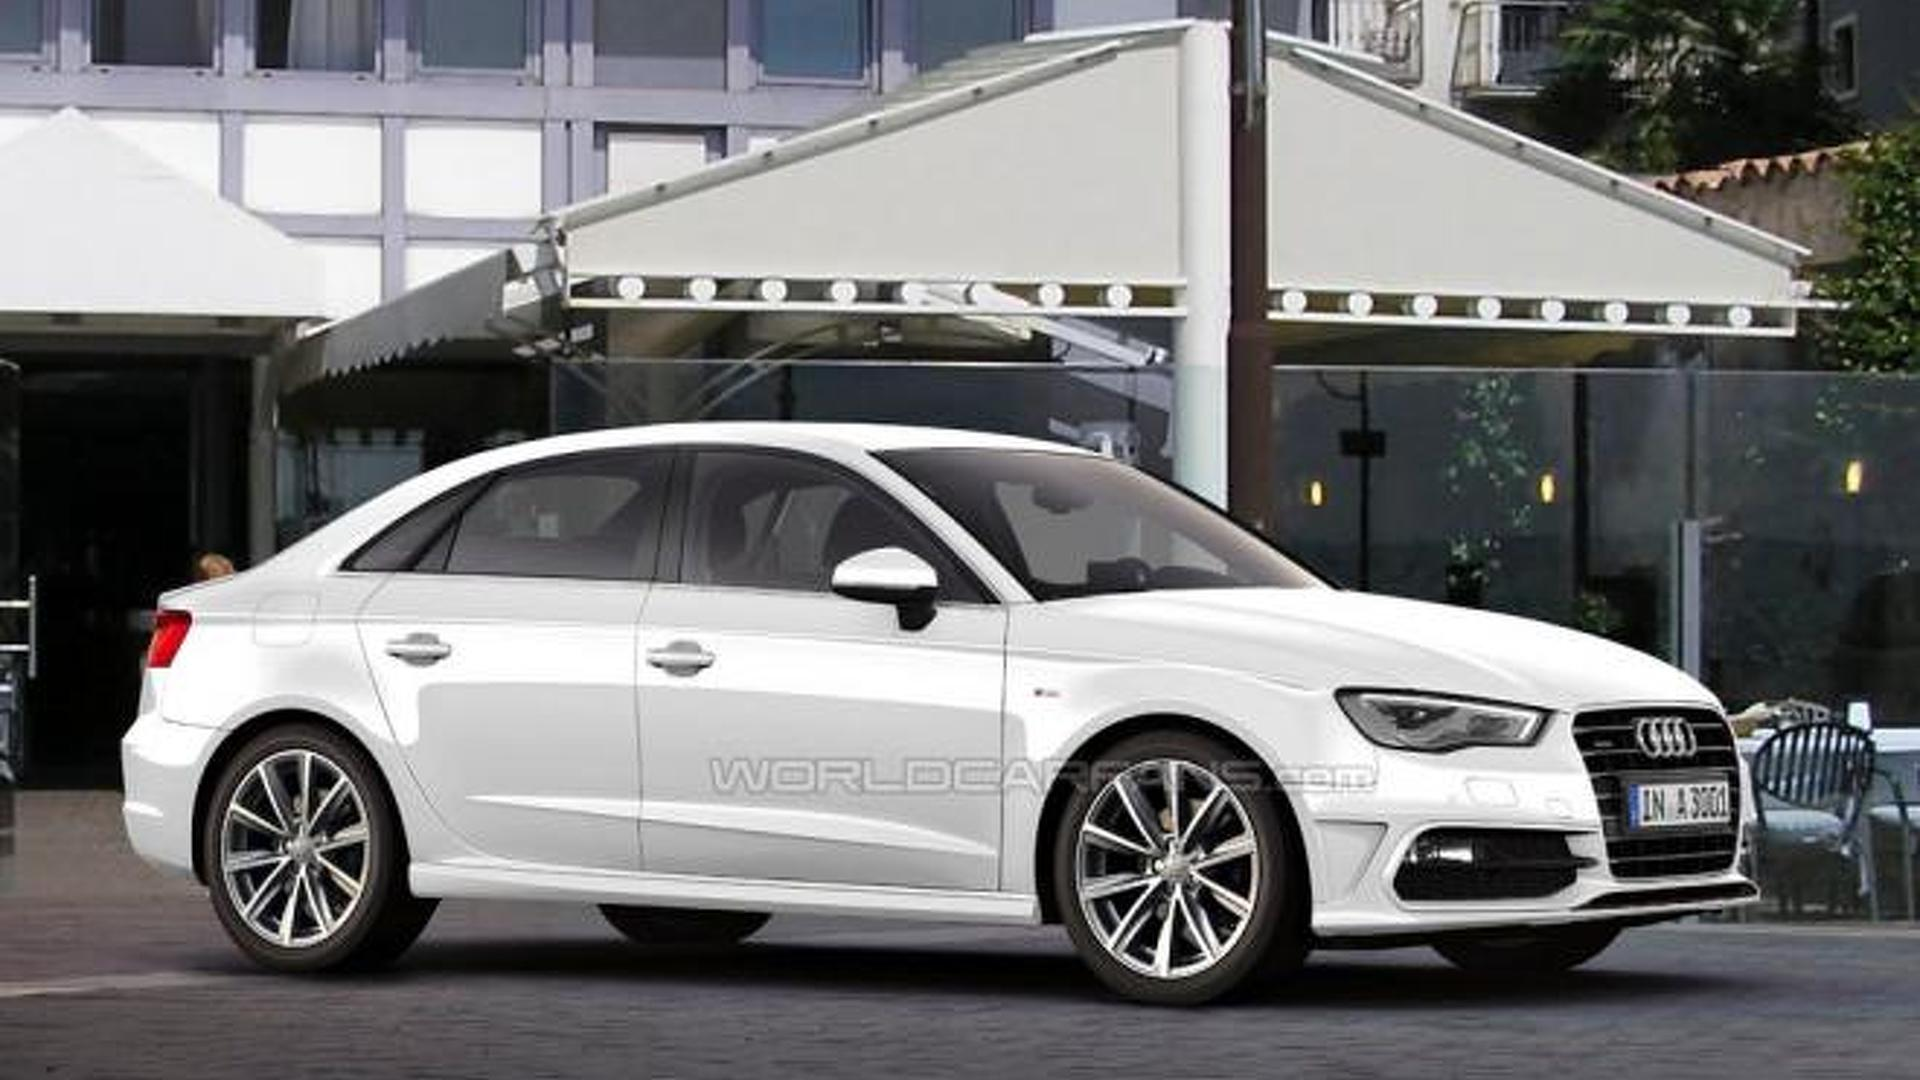 Audi A3 sedan confirmed for U.S. launch later this year